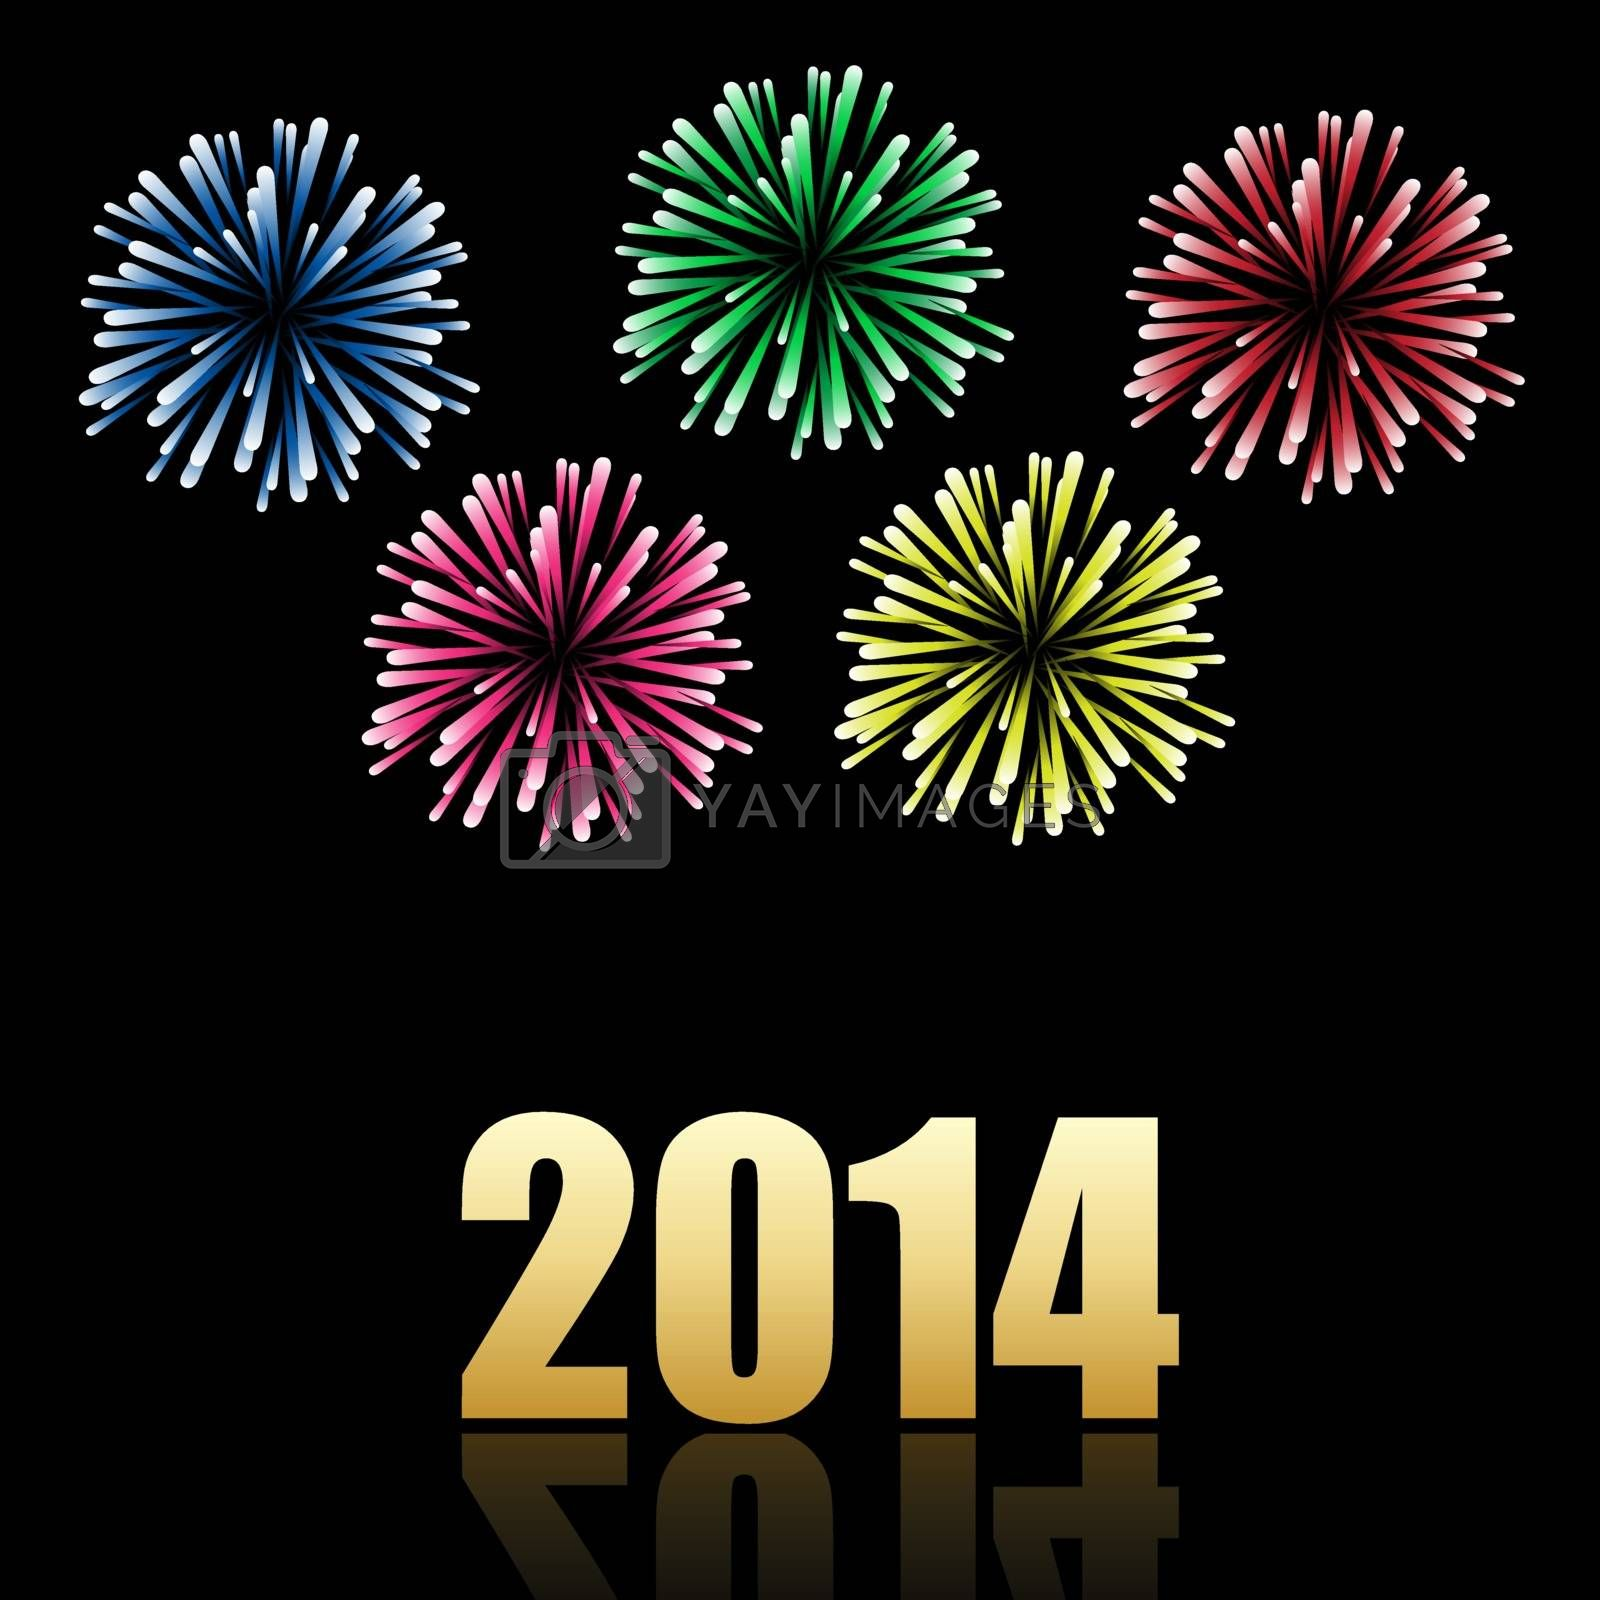 2014 new year celebration with colorful fireworks